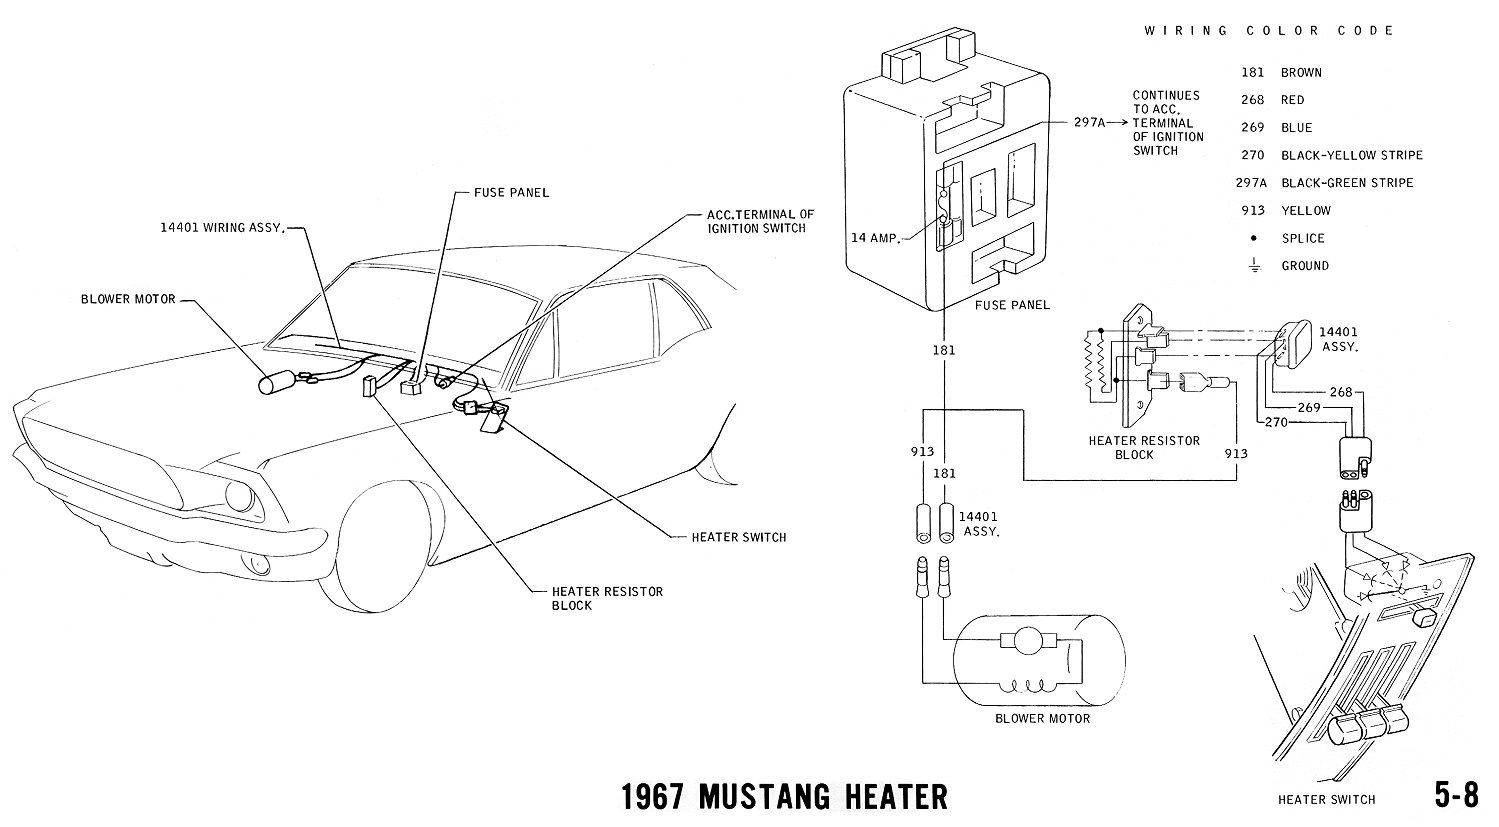 hight resolution of 1967 mustang wiring and vacuum diagrams average joe restoration1967 mustang heater pictorial and schematic switch